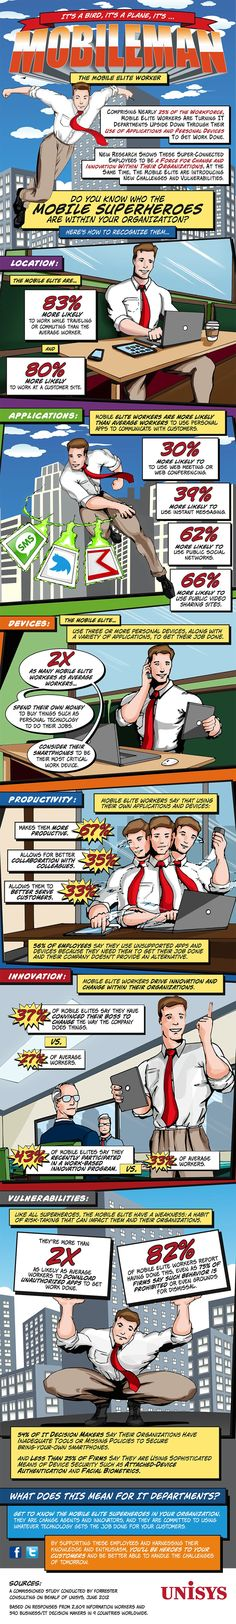 Are You A Mobile Superhero? [INFOGRAPHIC]